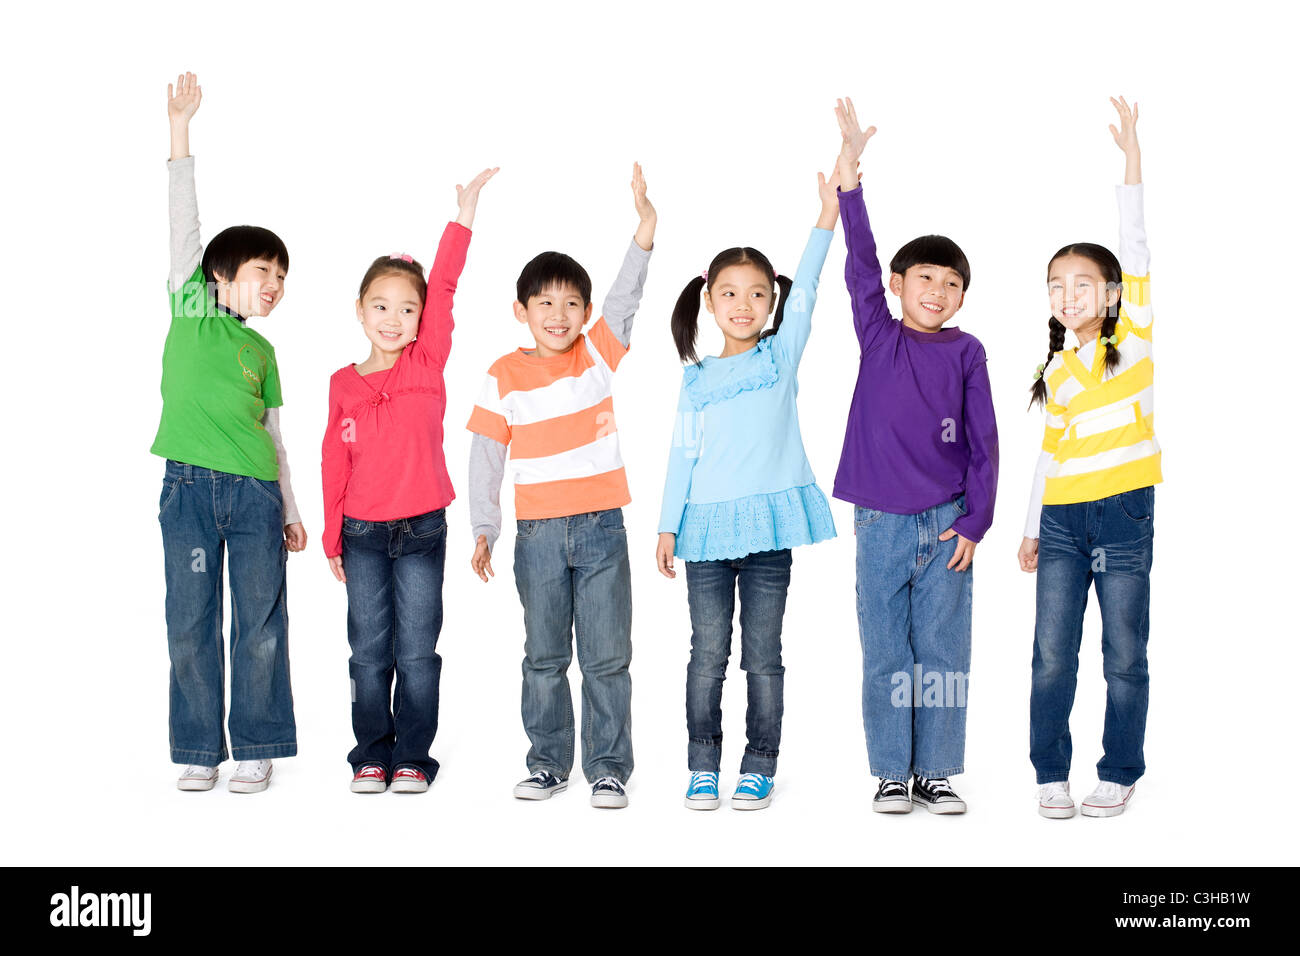 A group of children holding their hands in the air - Stock Image